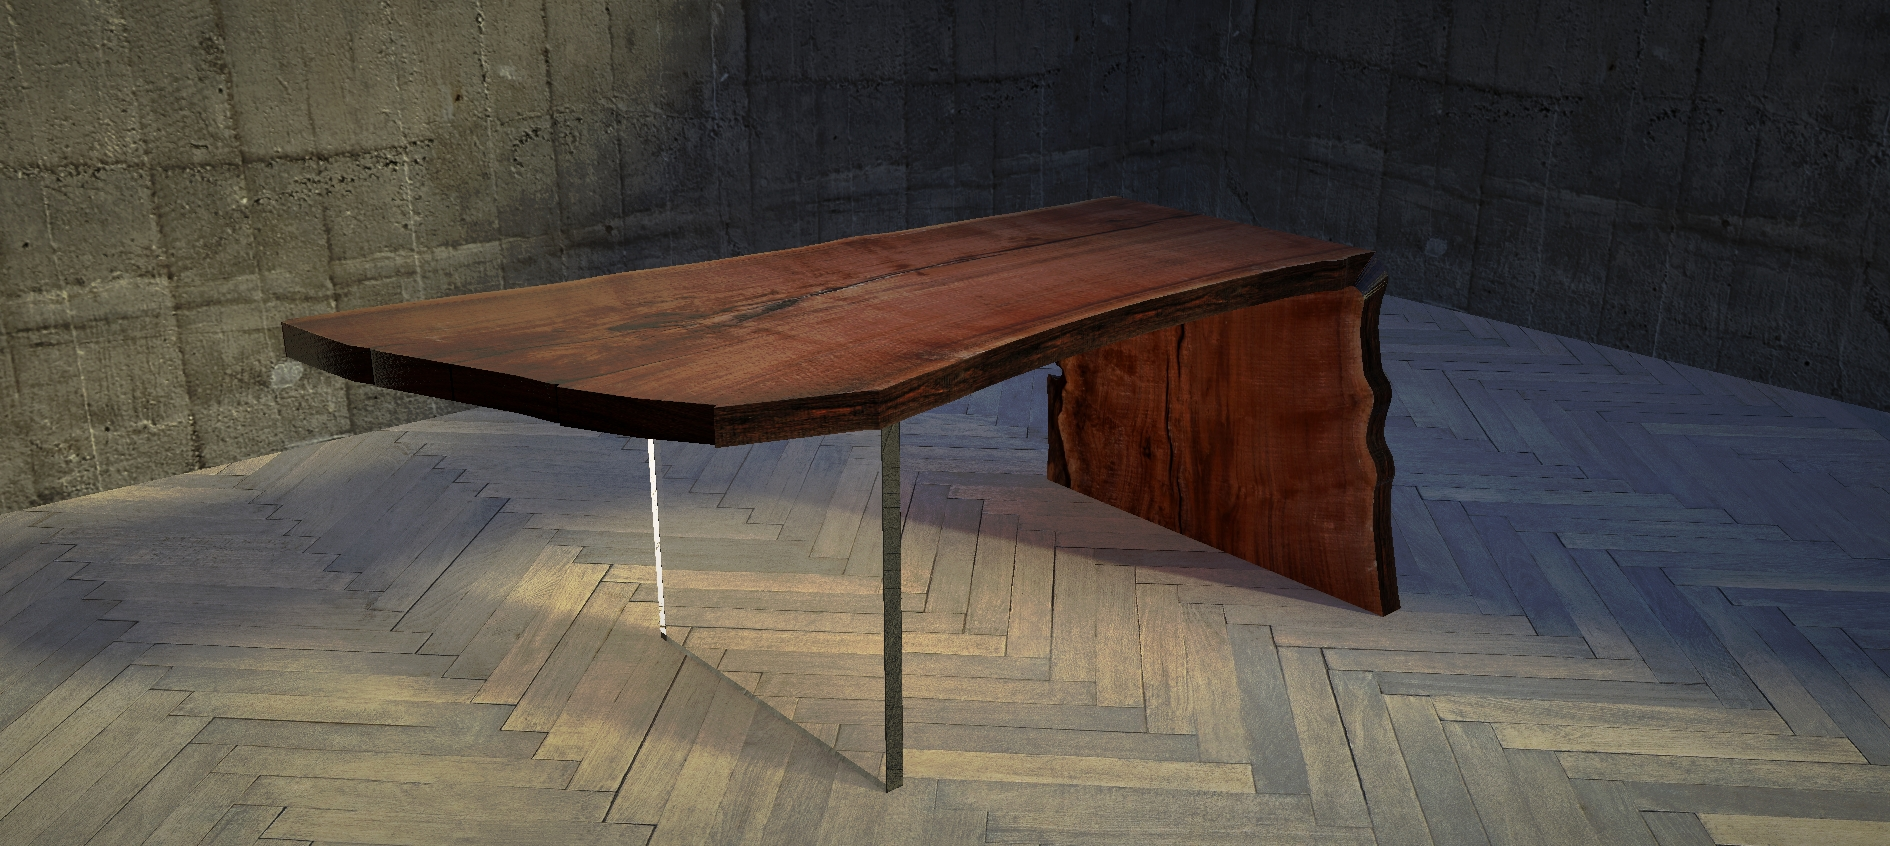 Walnut Waterfall Desk By Virginia Build Works For Kenneth Byrd Designs With Bratthaus